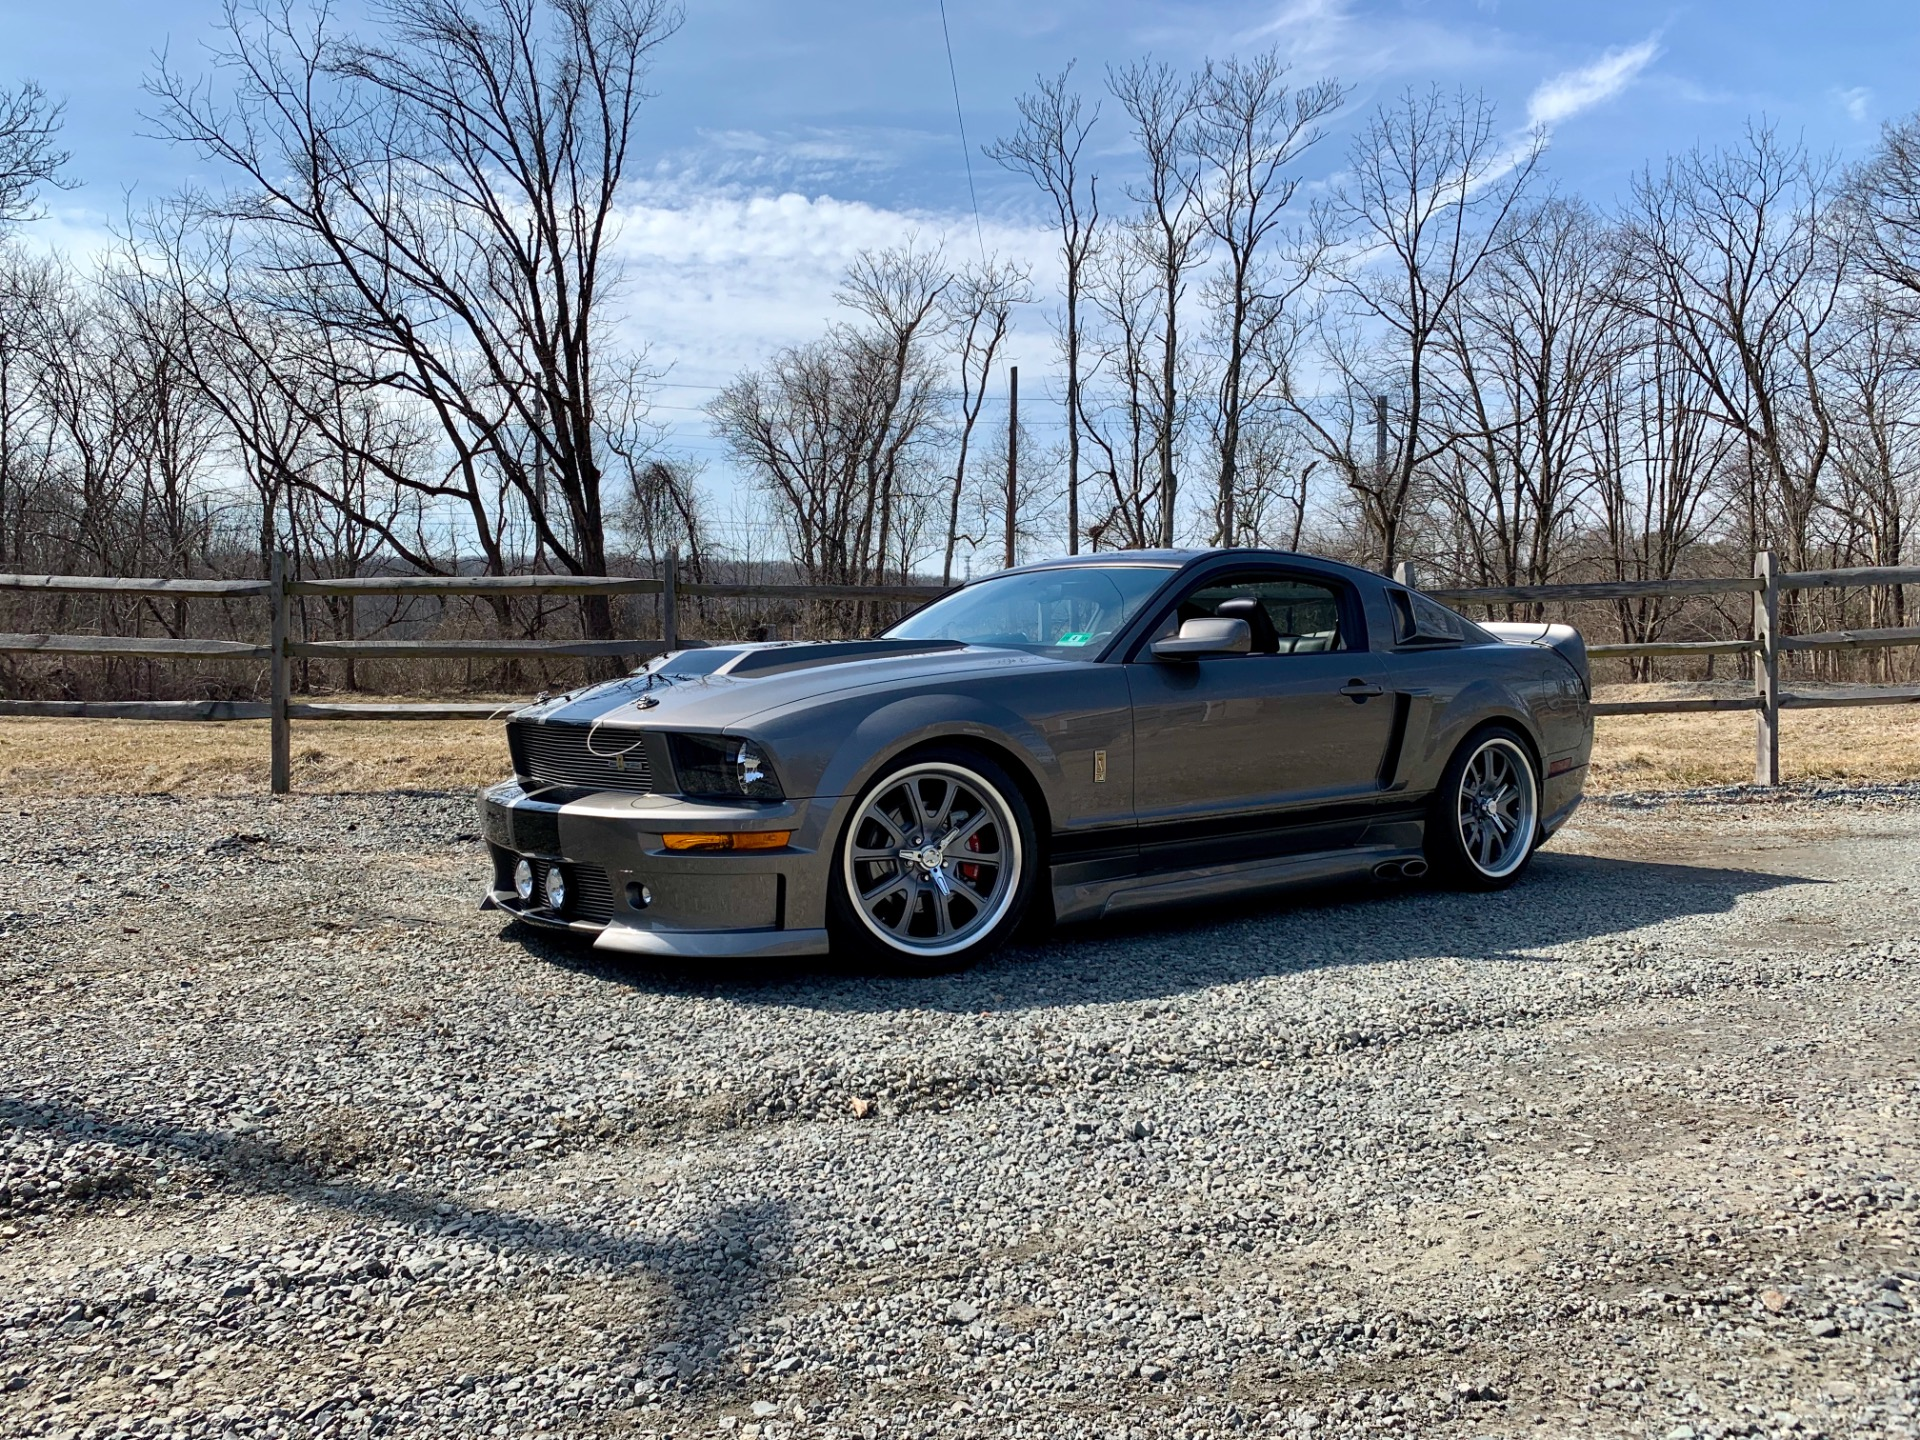 Used 2005 Ford Mustang Eleanor Shelby 'E' Edition  | Peapack, NJ